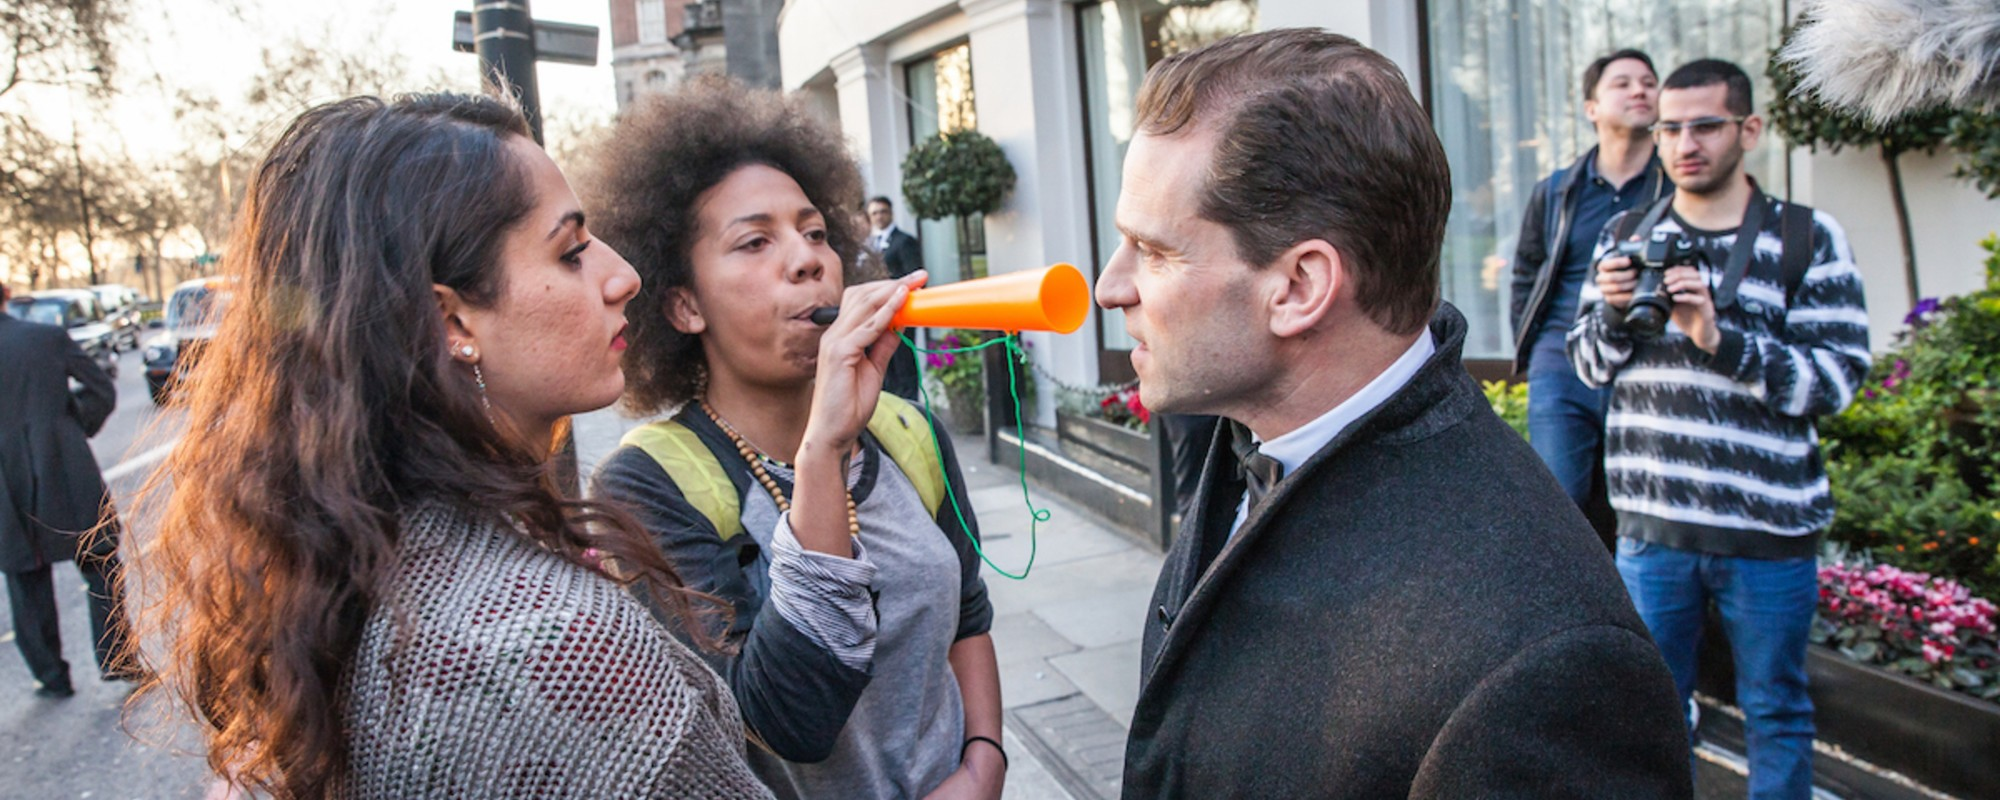 Photos of Activists Heckling a Swanky Property Industry Awards Ceremony